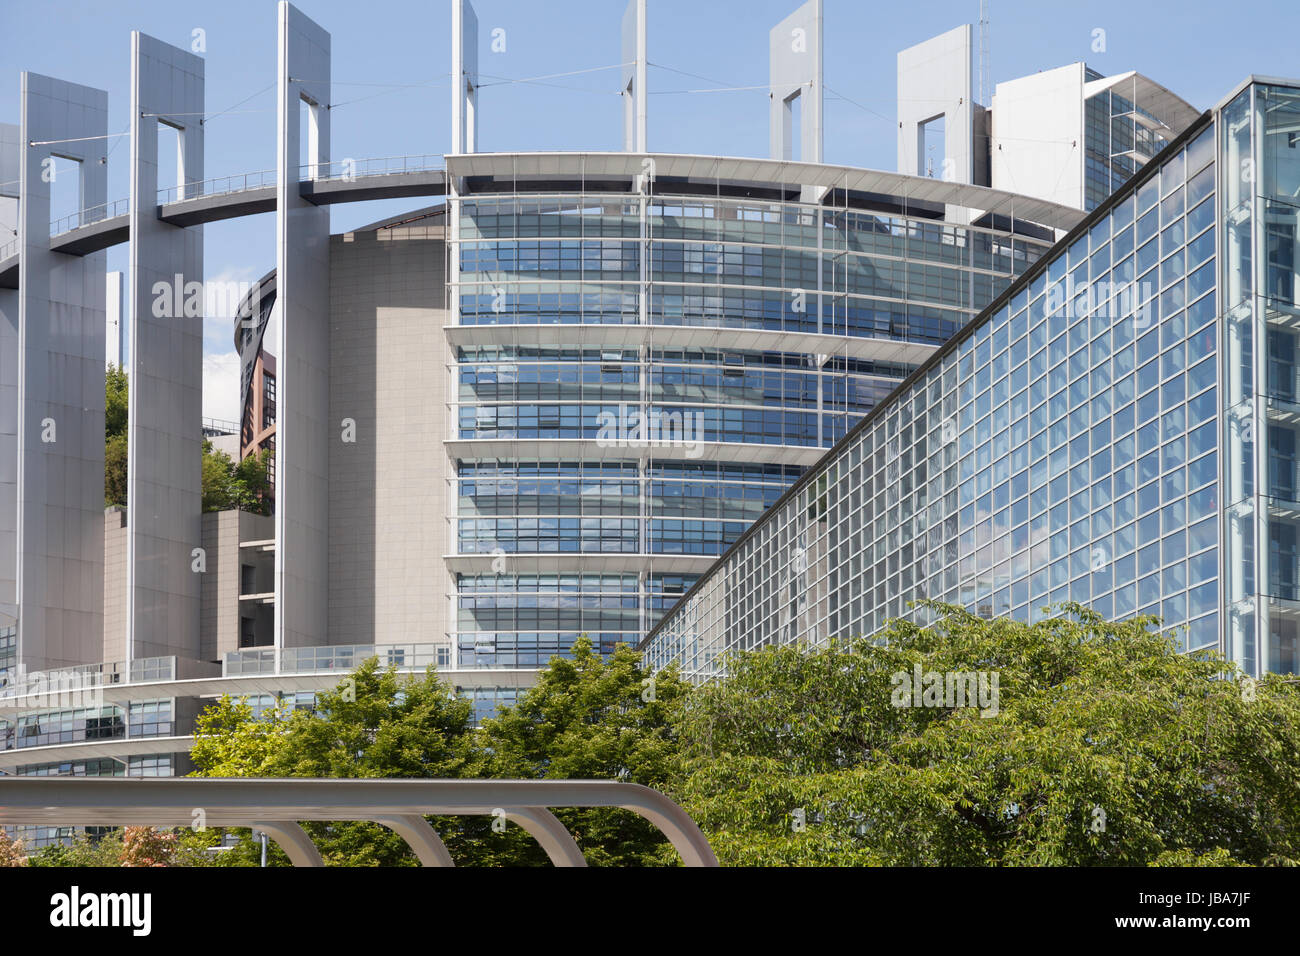 Tower of the Louise Weiss Building of the Eruopean Parliament in Strasbourg, France, designed by AS.Architecture - Stock Image